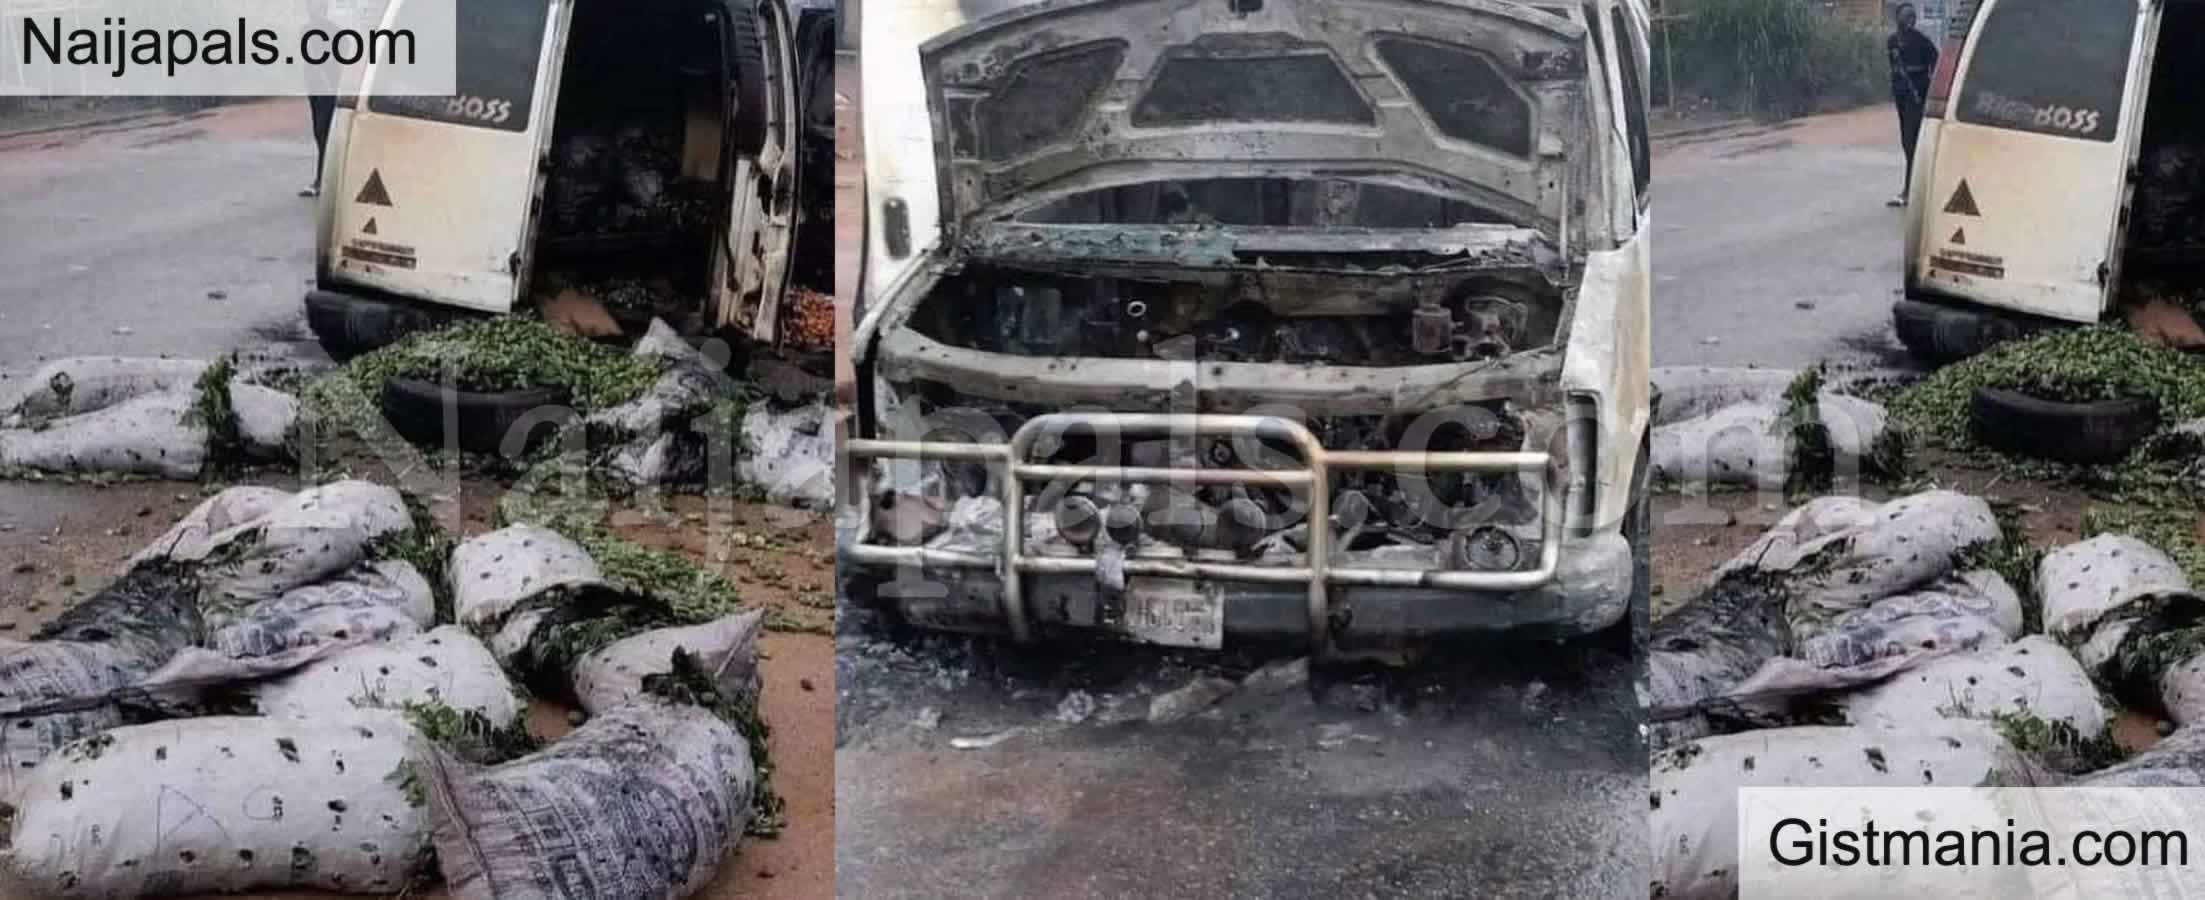 Horror! 5 People Dead, 10 Injured As Bus Catches Fire On Lagos-Ibadan Expressway